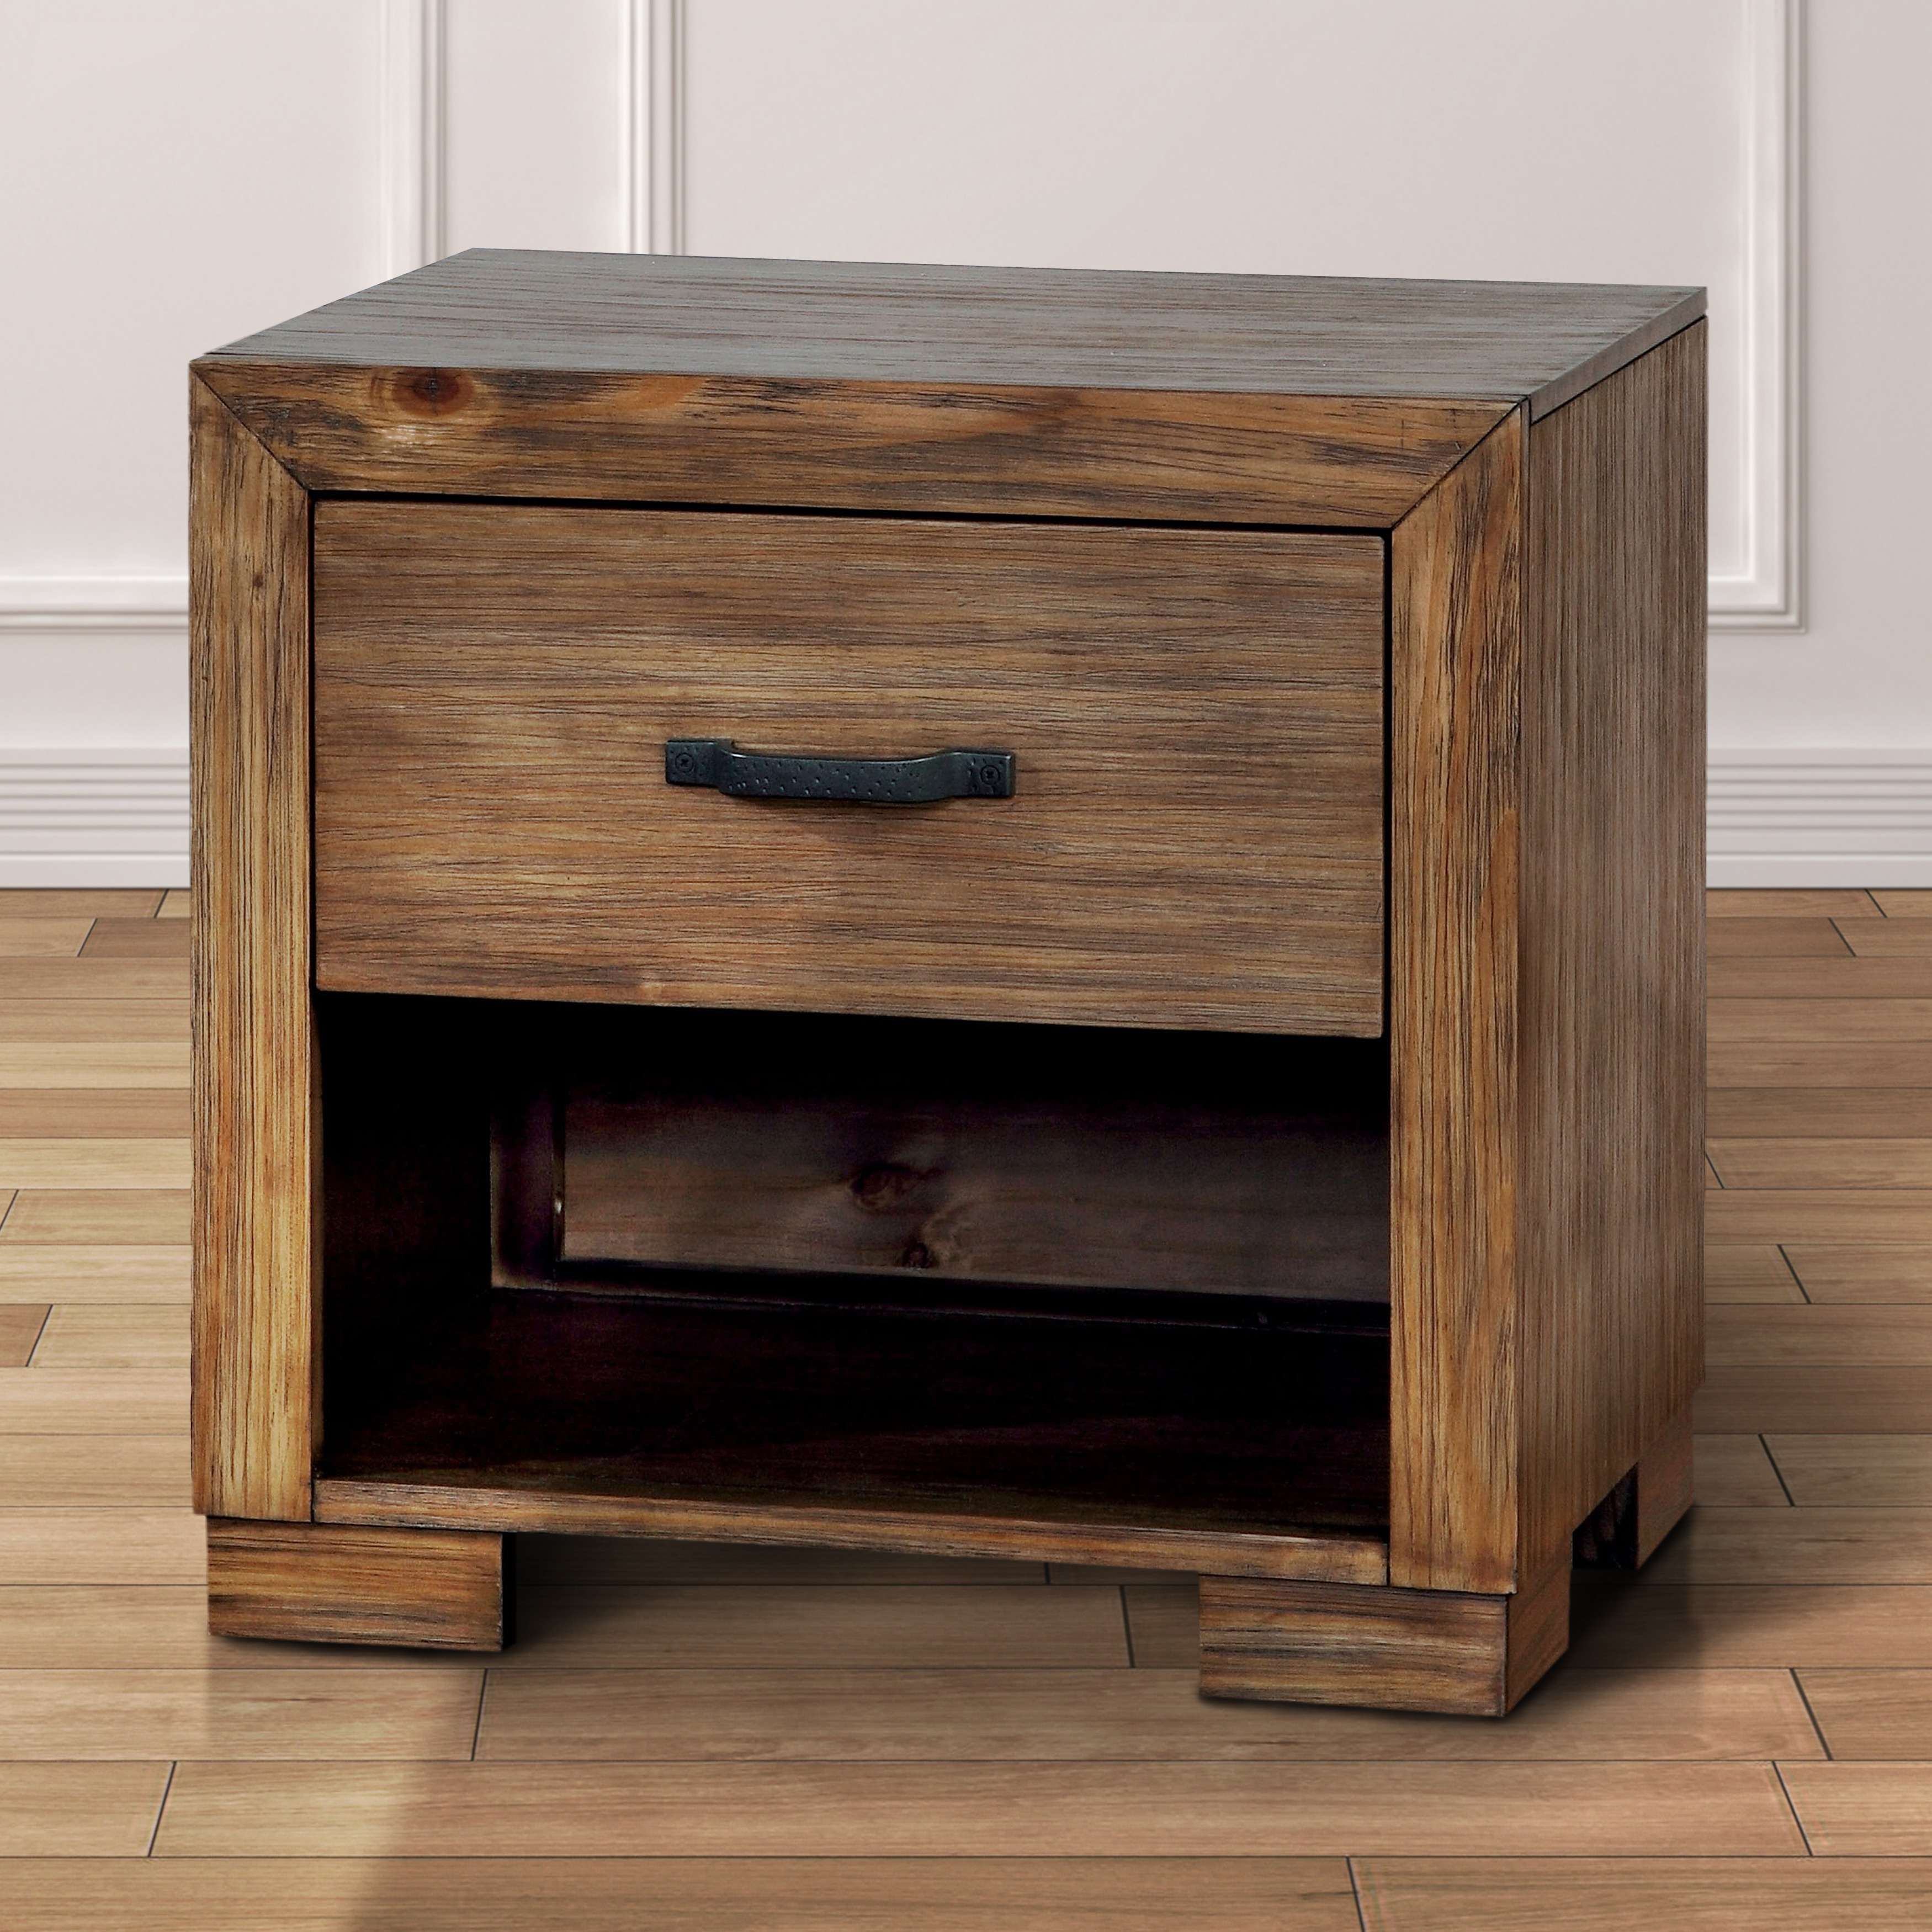 Shop Furniture Of America Marchez Rustic Nightstand With Built In USB Power Outlet